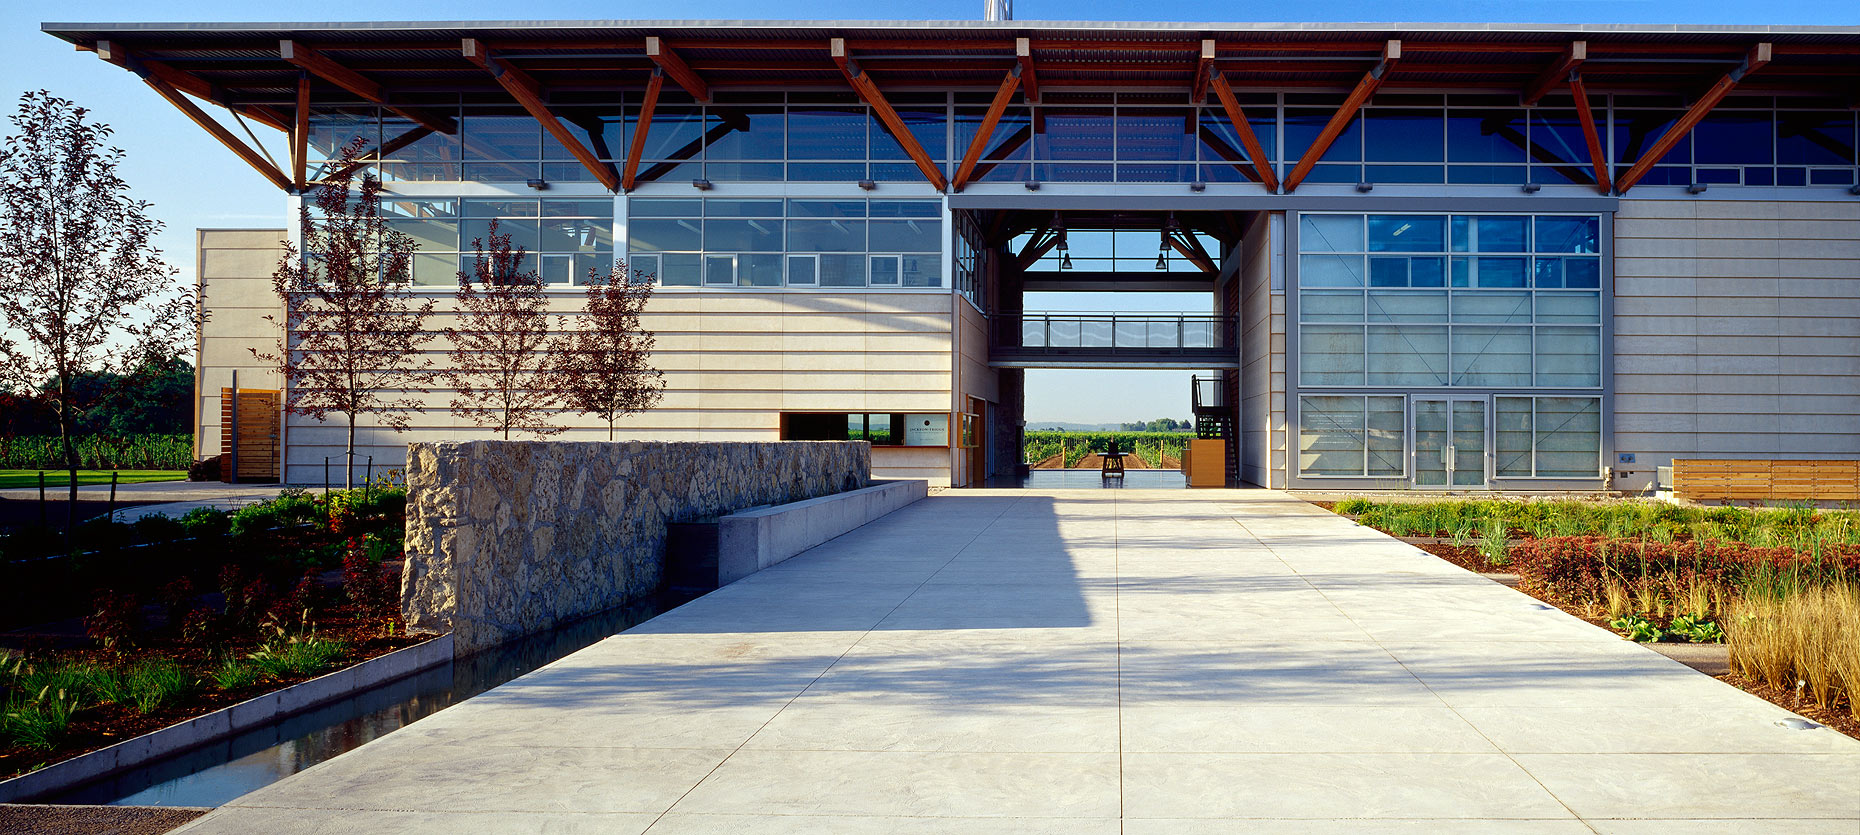 Entrance of Jackson Triggs winery Peter A. Sellar Architectural Photographer